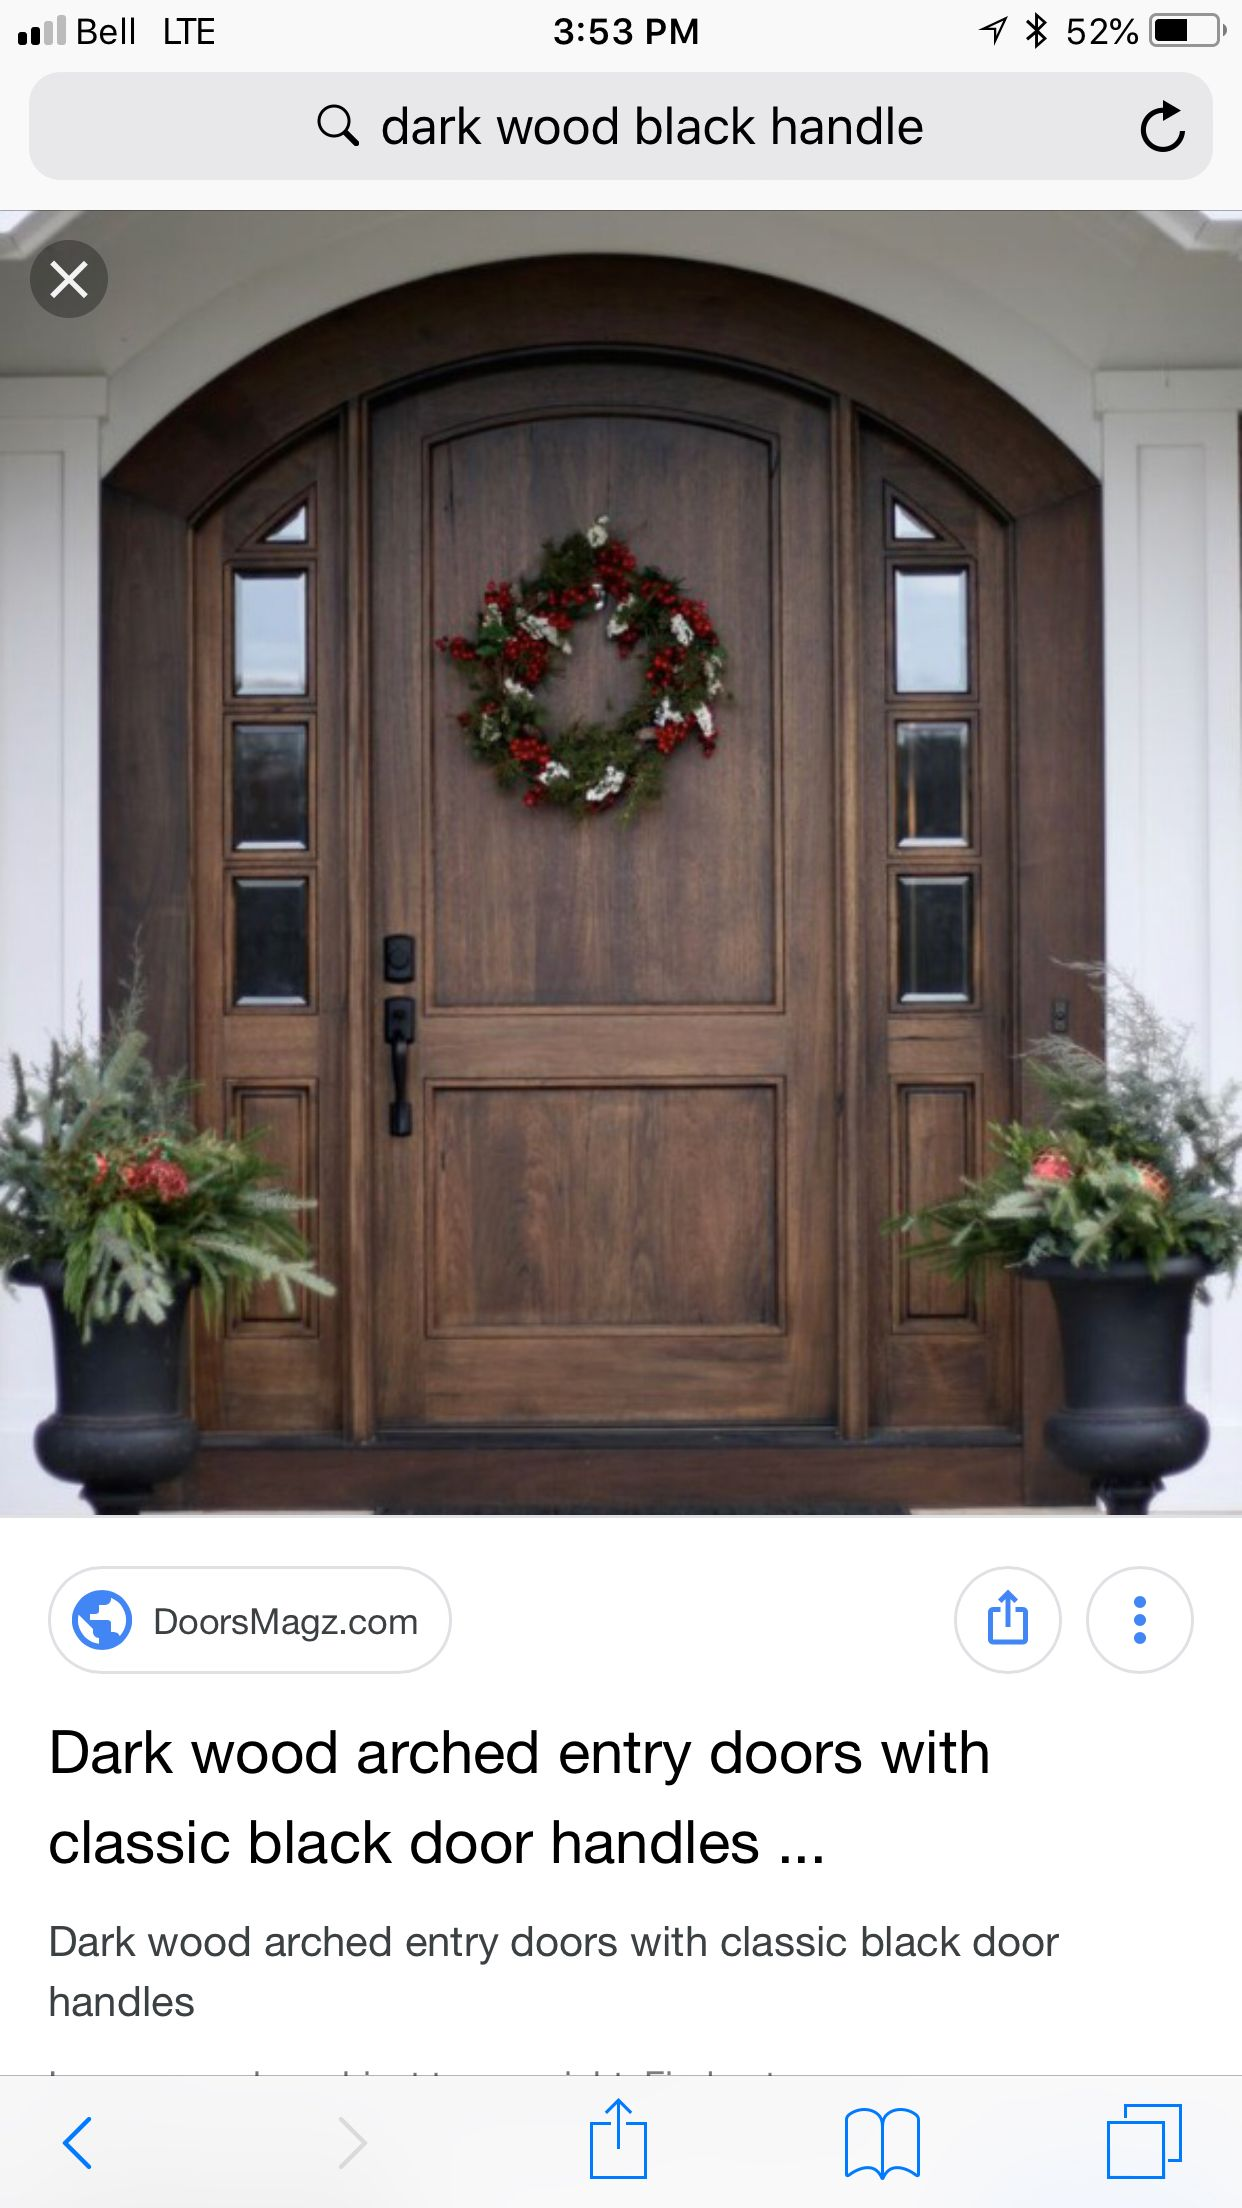 Pin by Kristy Hill on Feelin' Crafty... in 2019   Wood front doors Basic Wood Exterior Door on